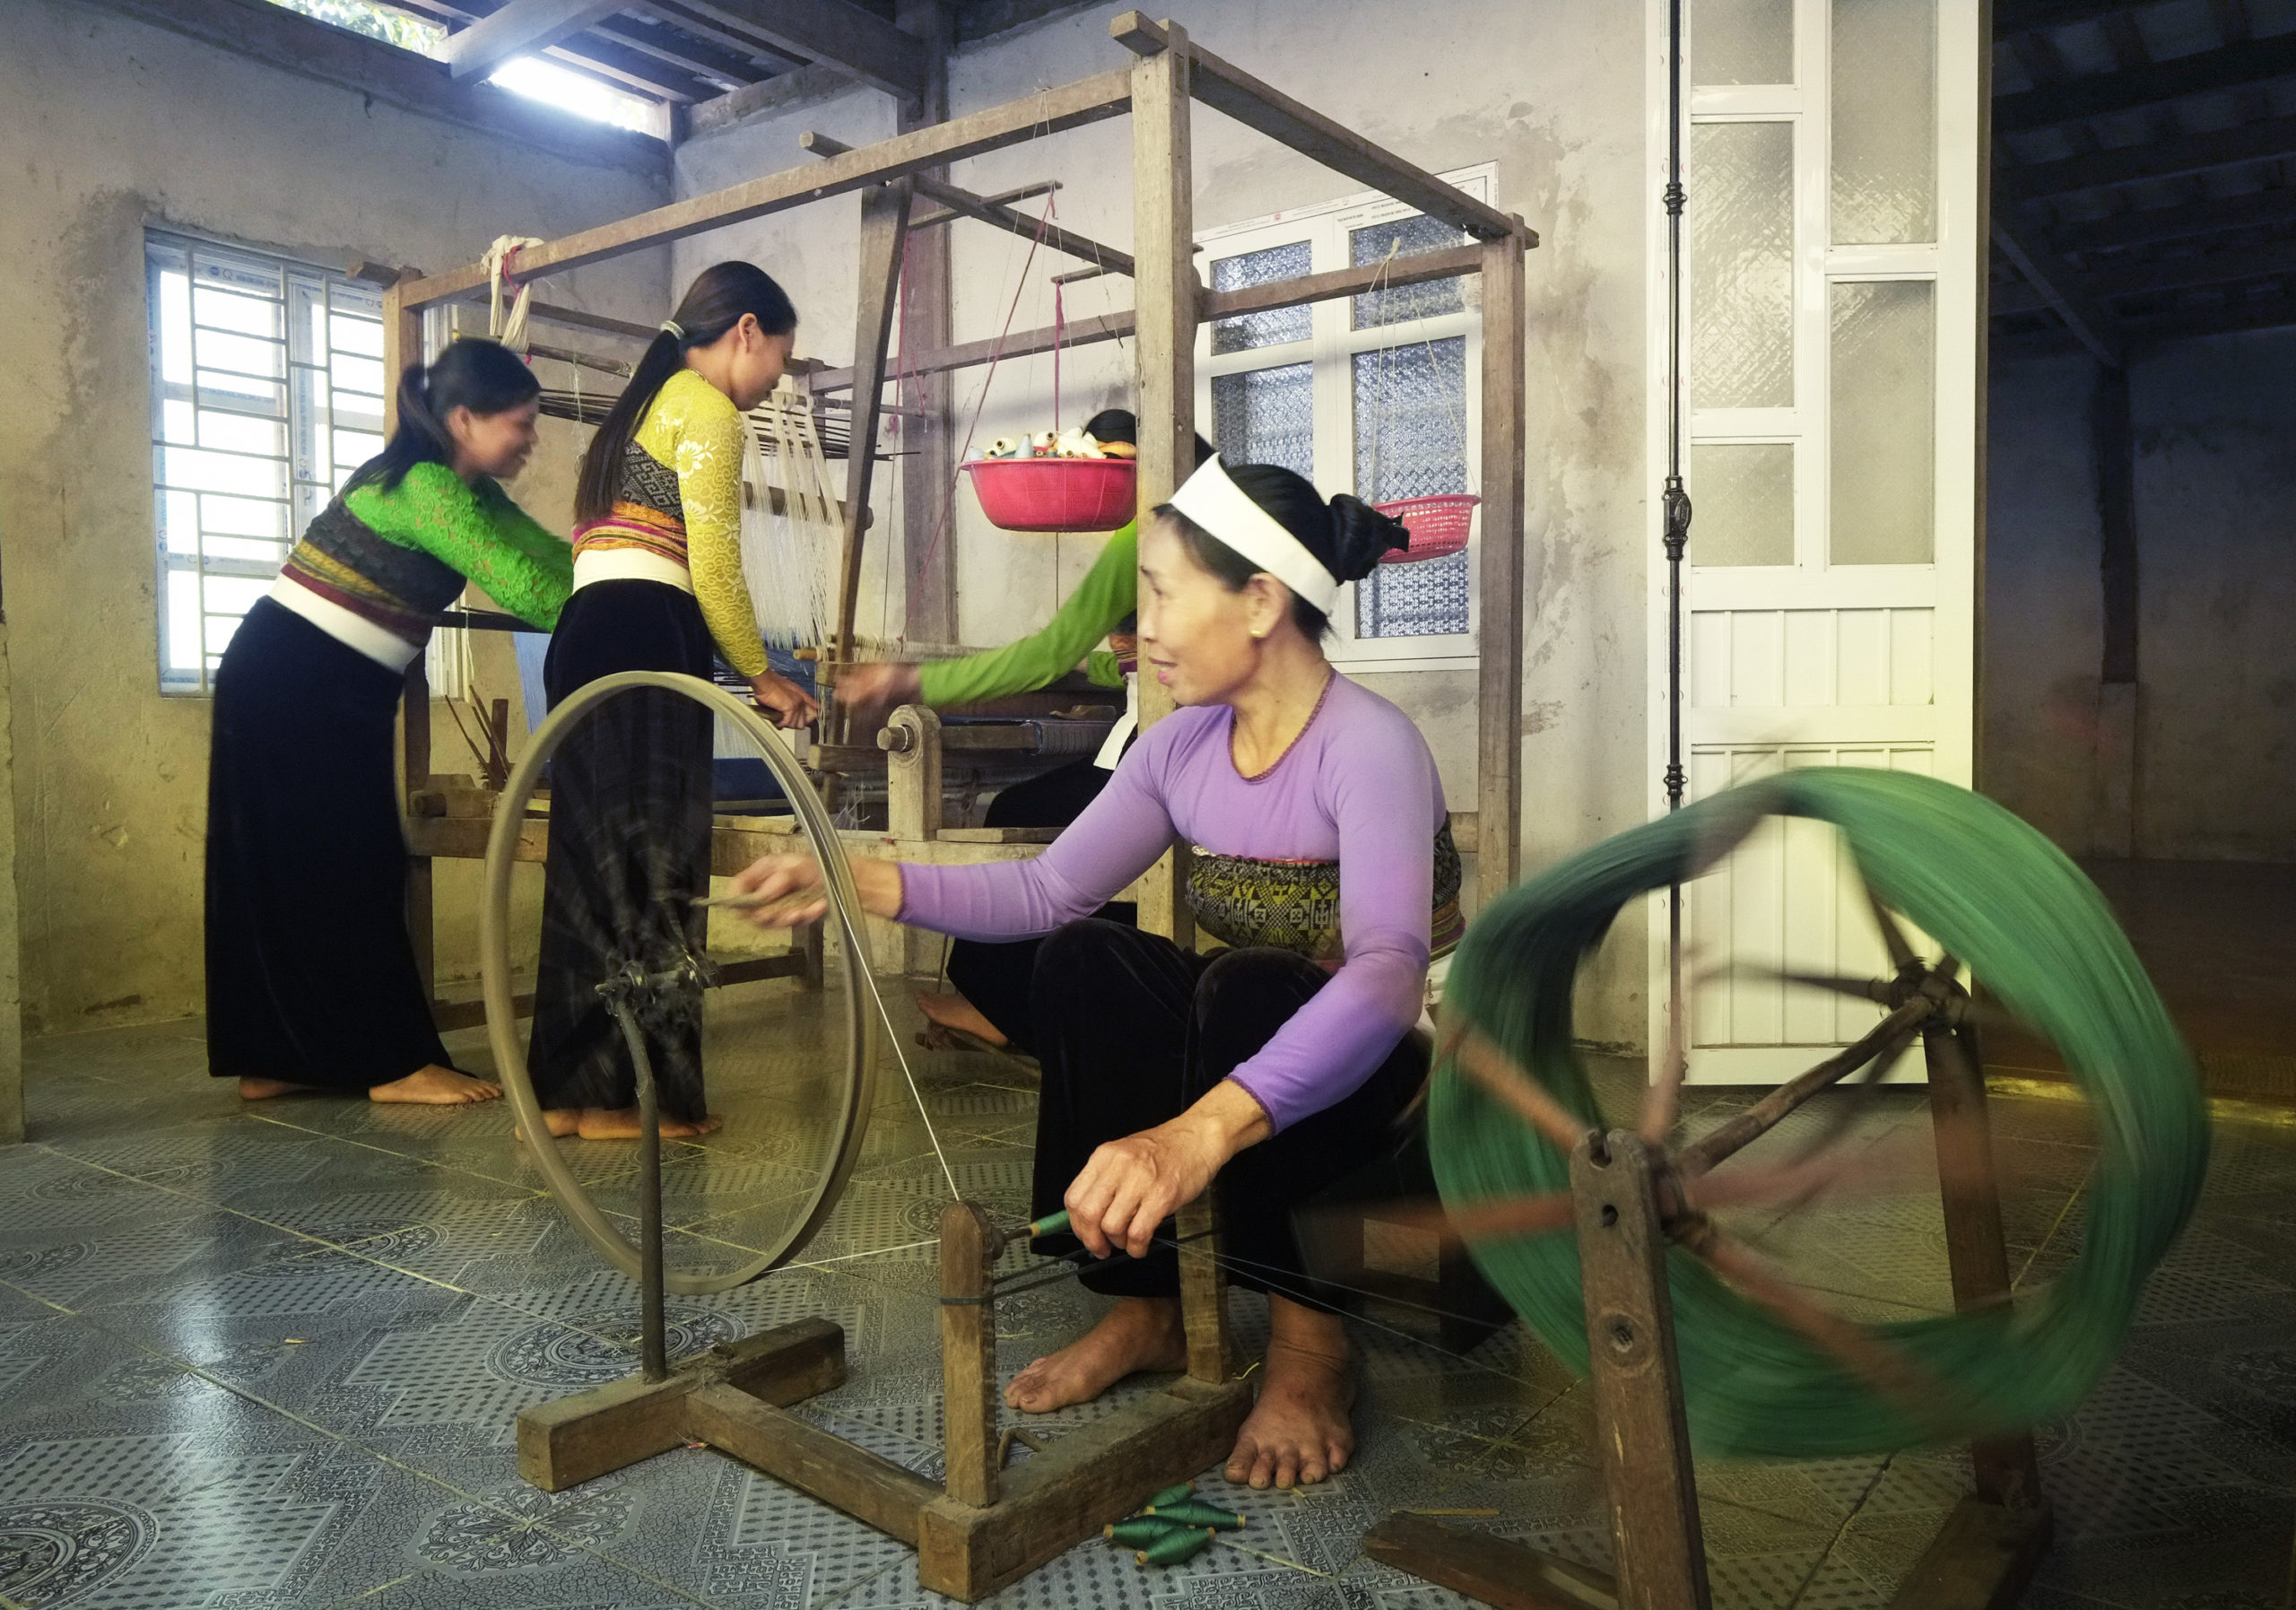 Thai women weaving picture taken by vietnamvisa-easy